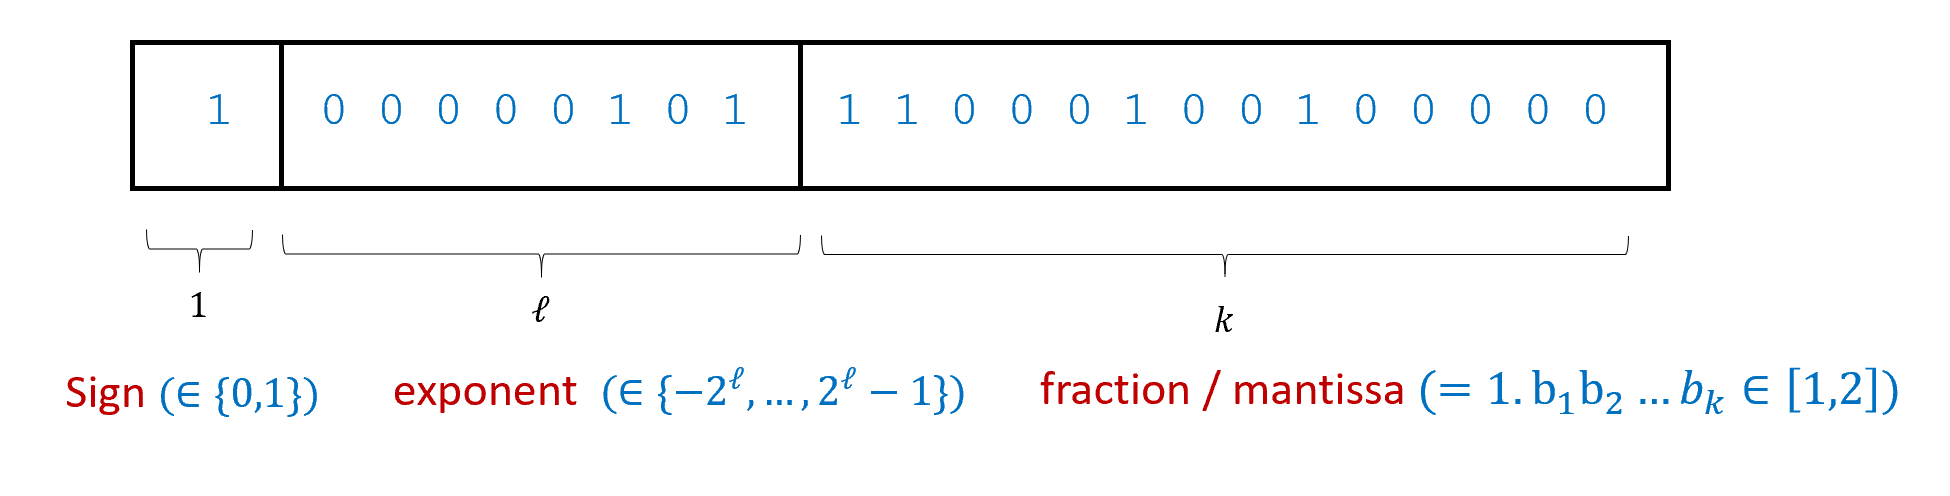 2.5: The floating point representation of a real number x\in \R is its approximation as a number of the form \sigma b \cdot 2^e where \sigma \in \{\pm 1 \}, e is an (potentially negative) integer, and b is a rational number between 1 and 2 expressed as a binary fraction 1.b_0b_1b_2\ldots b_{k} for some b_1,\ldots,b_k \in \{0,1\} (that is b = 1 + b_1/2 + b_2/4 + \ldots + b_k/2^k). Commonly-used floating point representations fix the numbers \ell and k of bits to represent e and b respectively. In the example above, assuming we use two's complement representation for e, the number represented is -1 \times 2^{5} \times ( 1 + 1/2 + 1/4 + 1/64 + 1/512) = -56.5625.